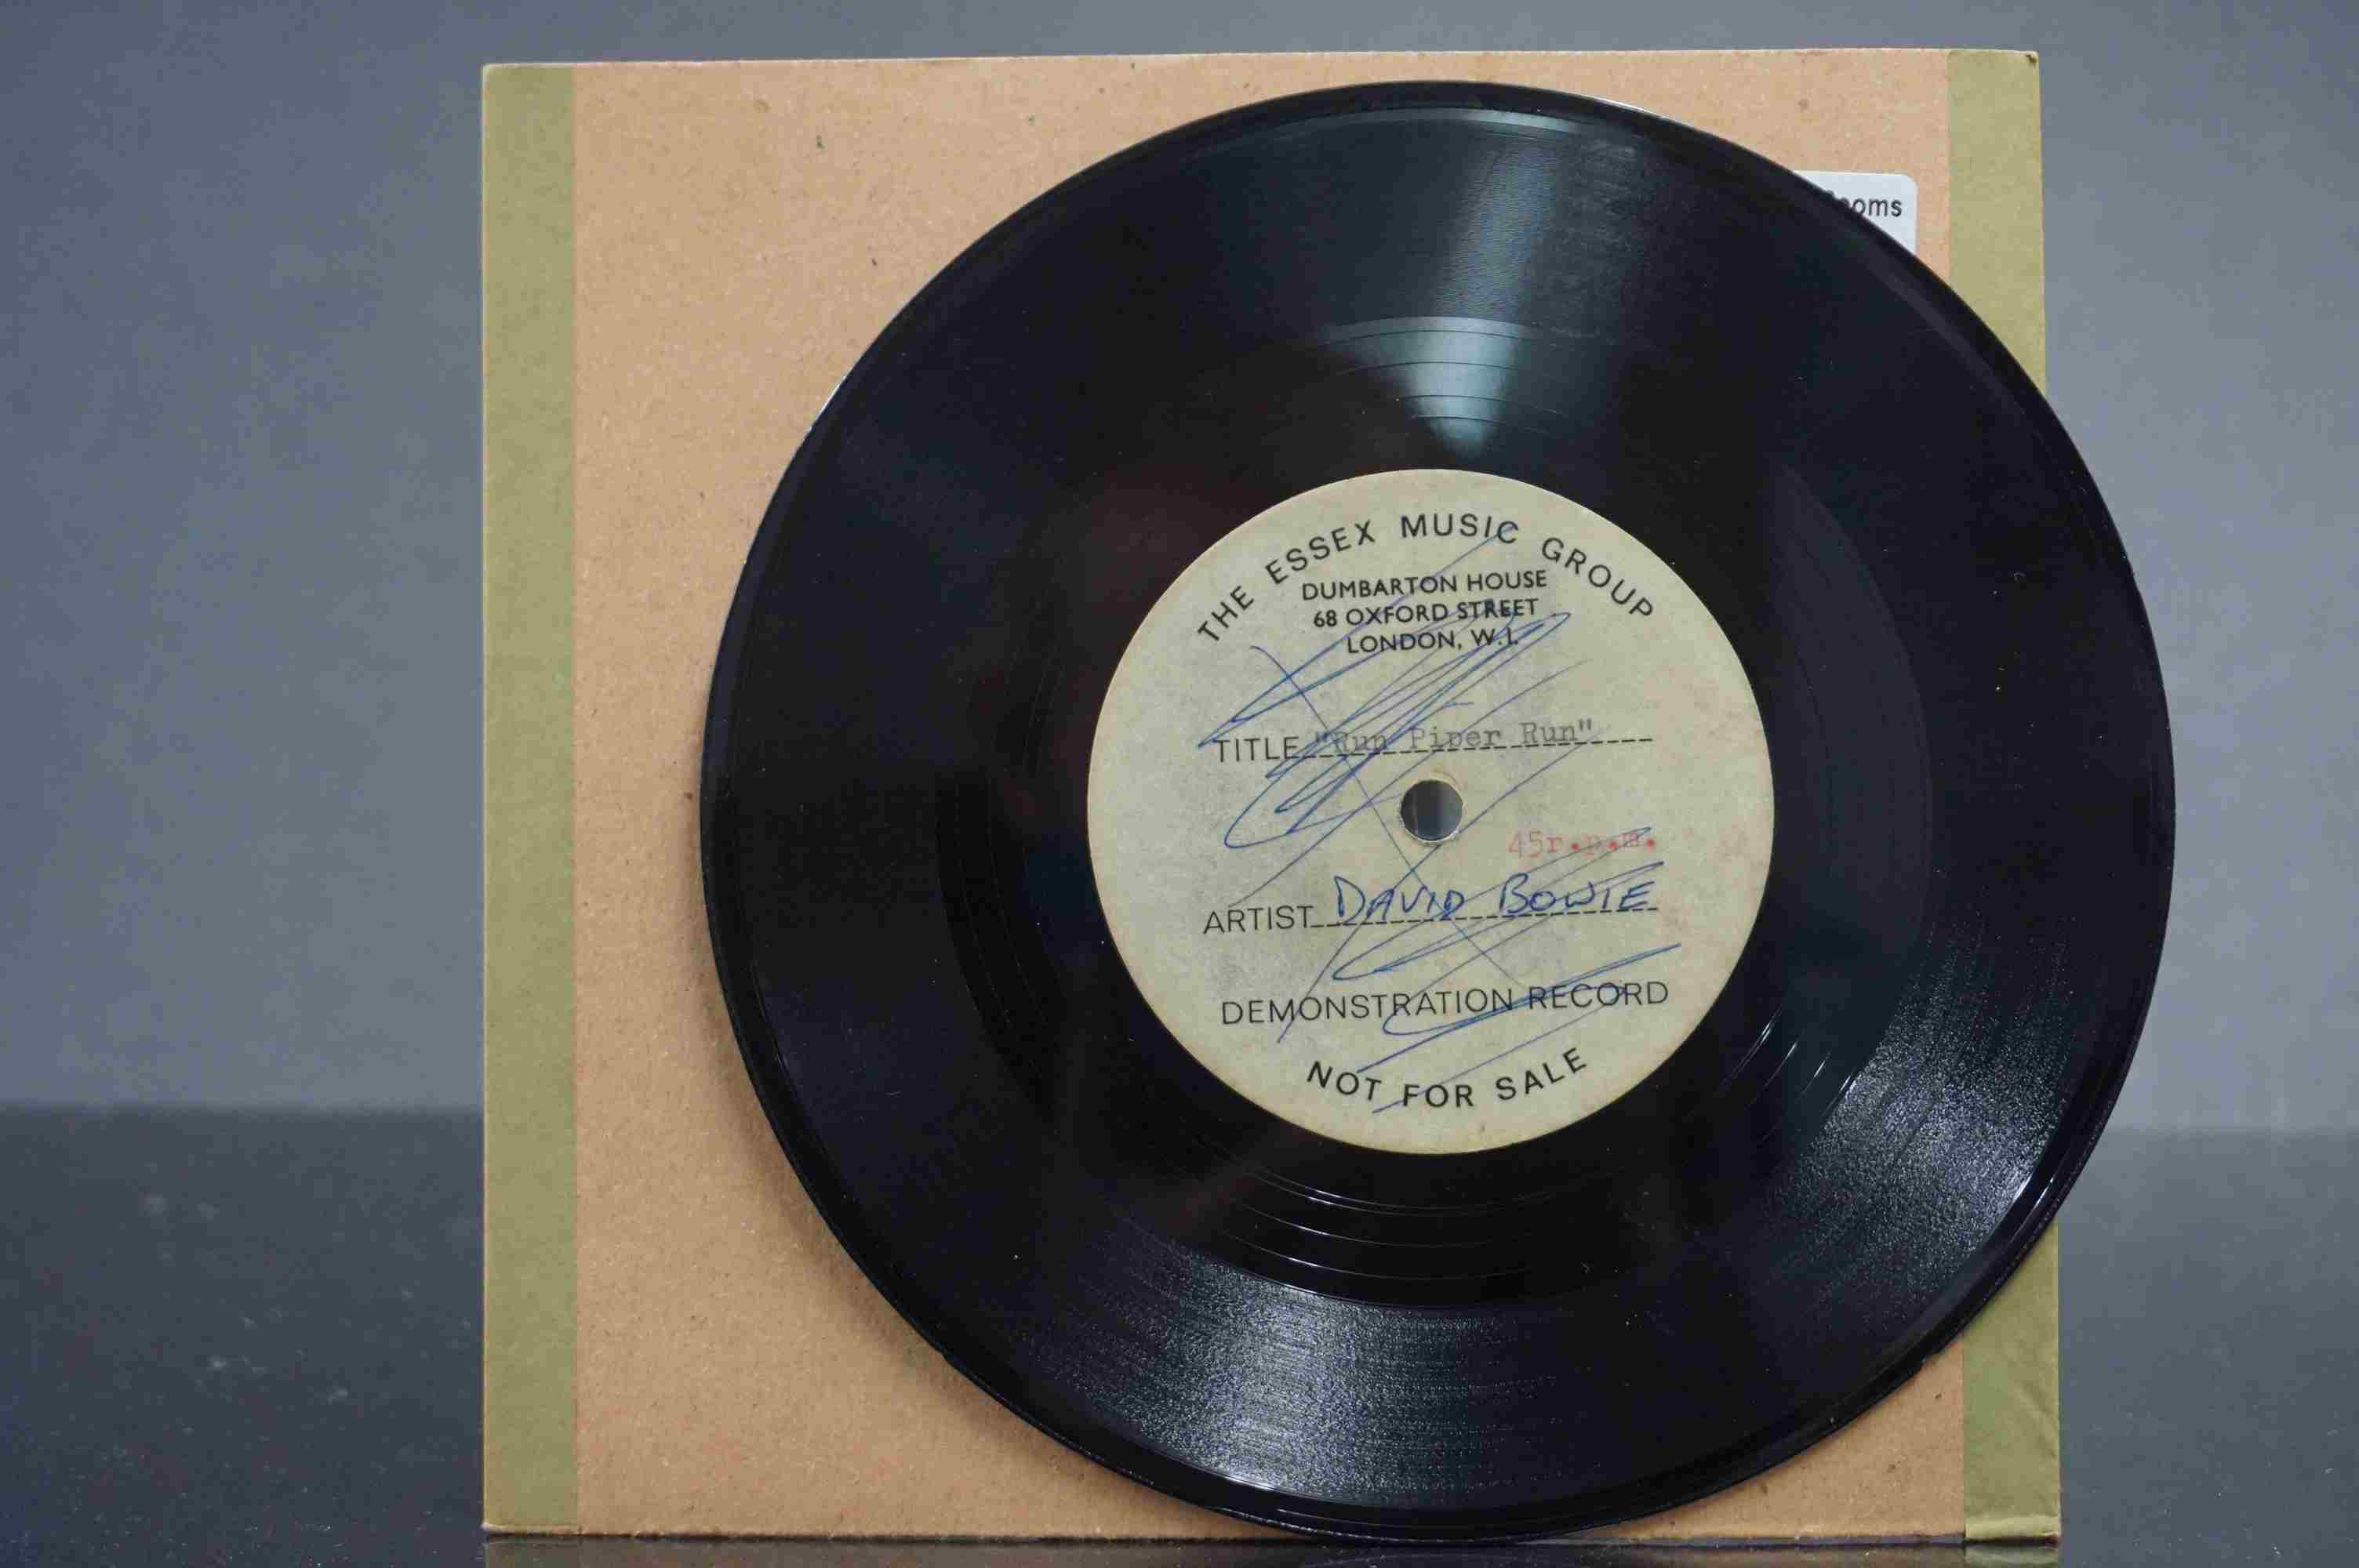 Vinyl - David Bowie / Ace Kefford - A two sided acetate featuring a previously unknown & unheard - Image 4 of 9